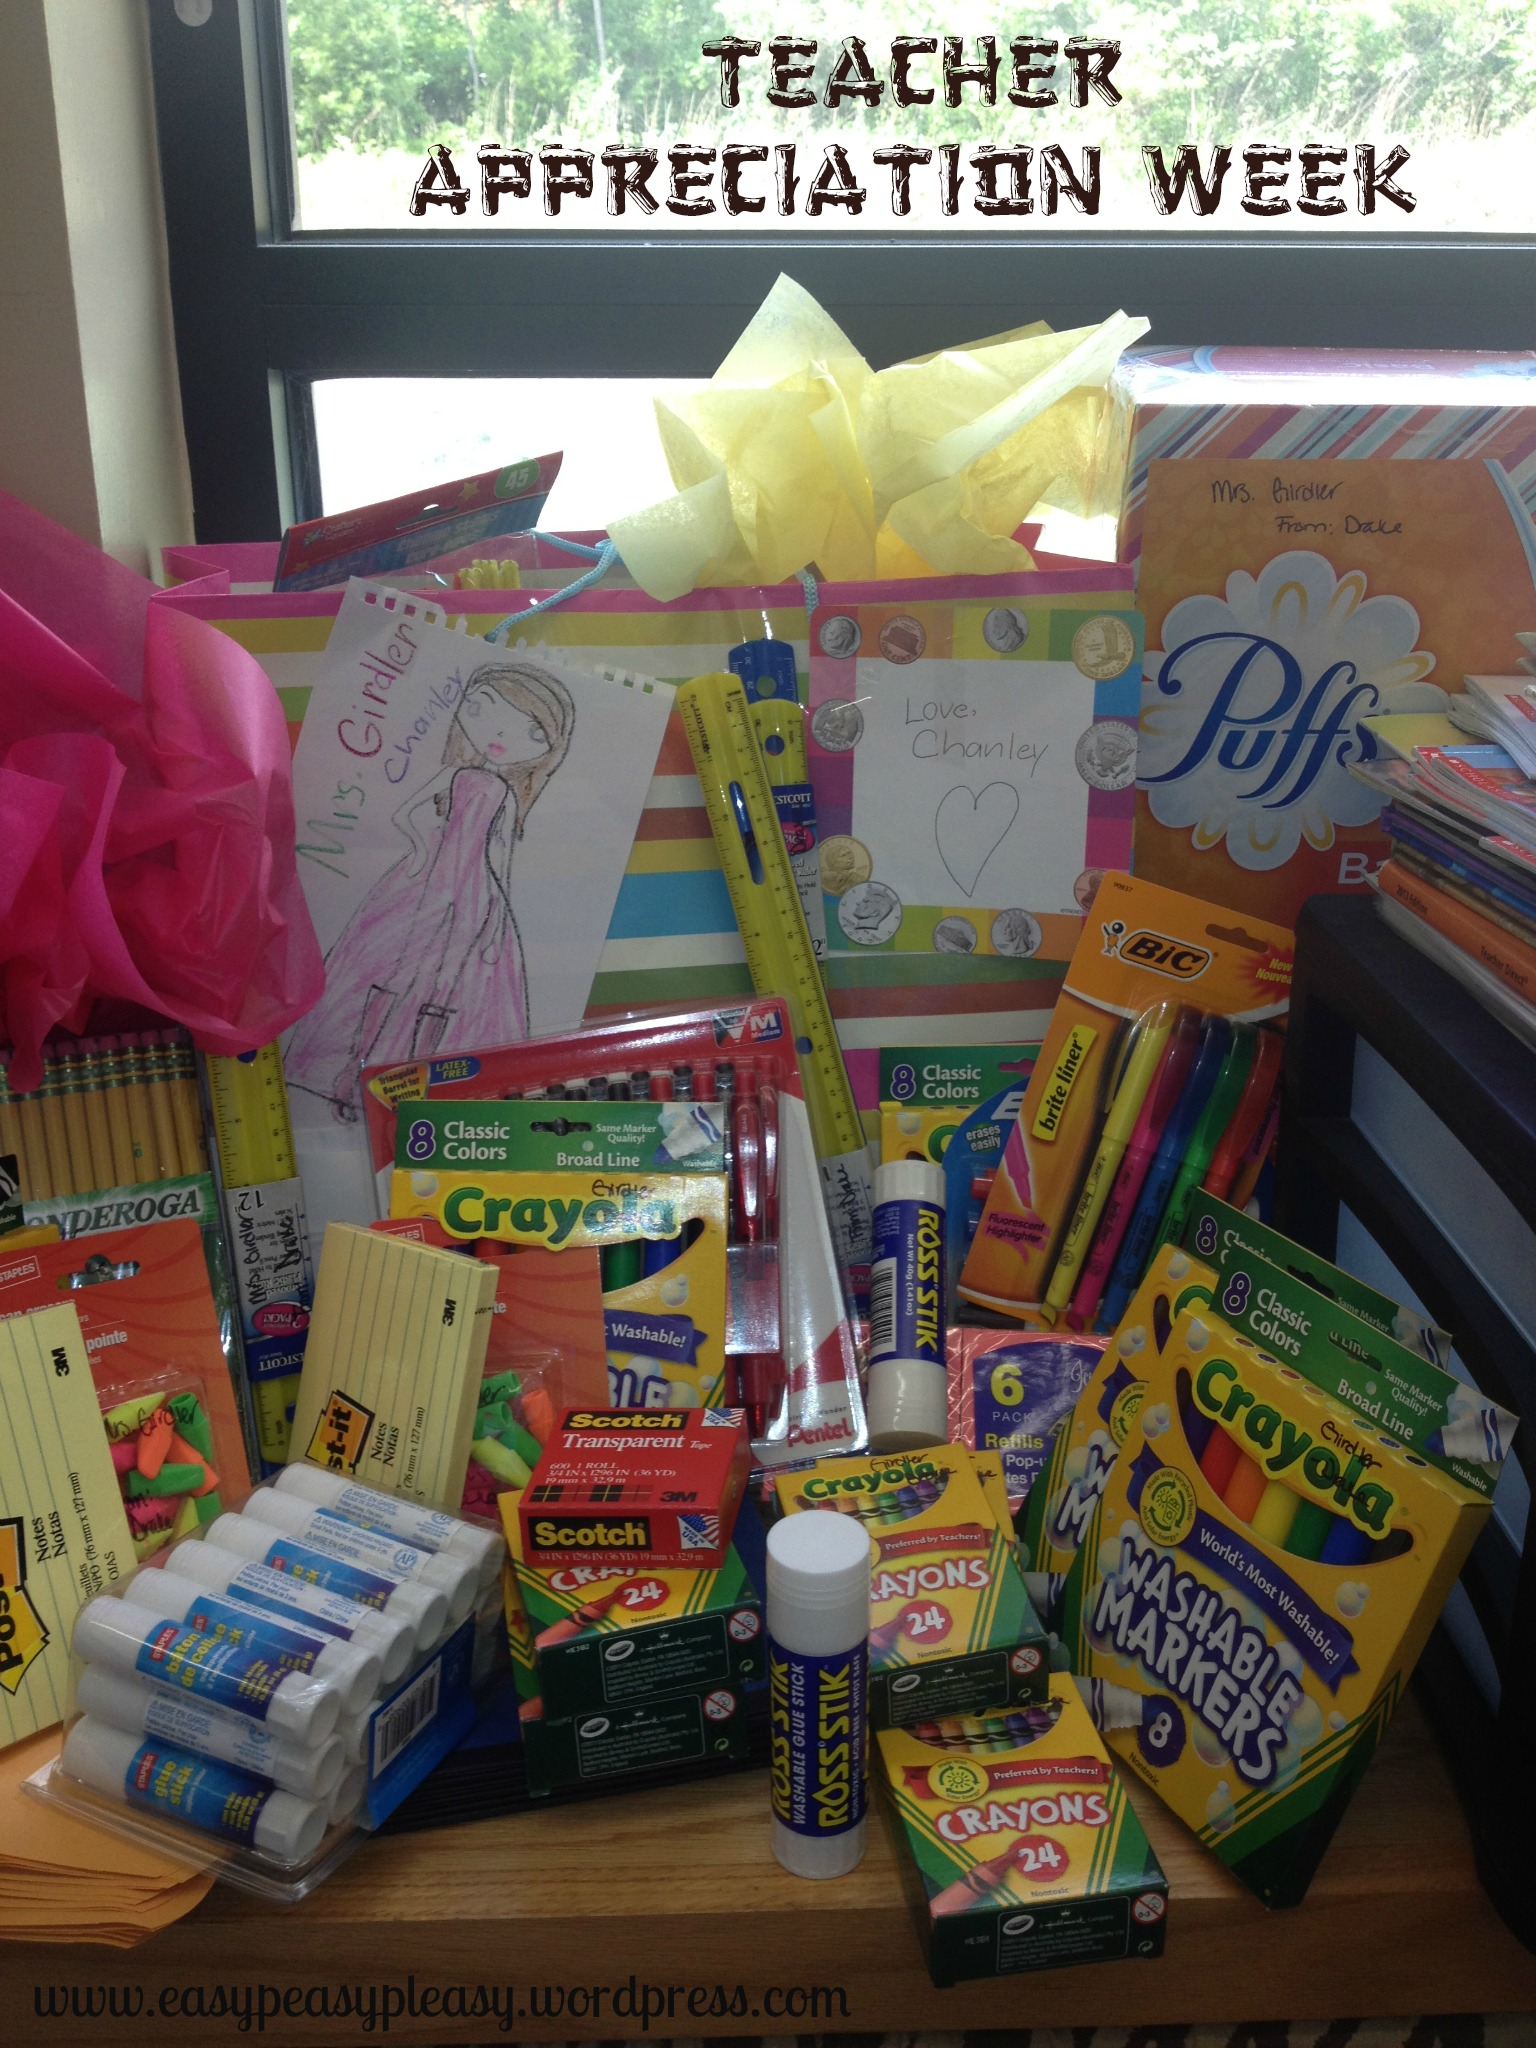 Teacher Appreciation Week Help stock the teachers with school supplies